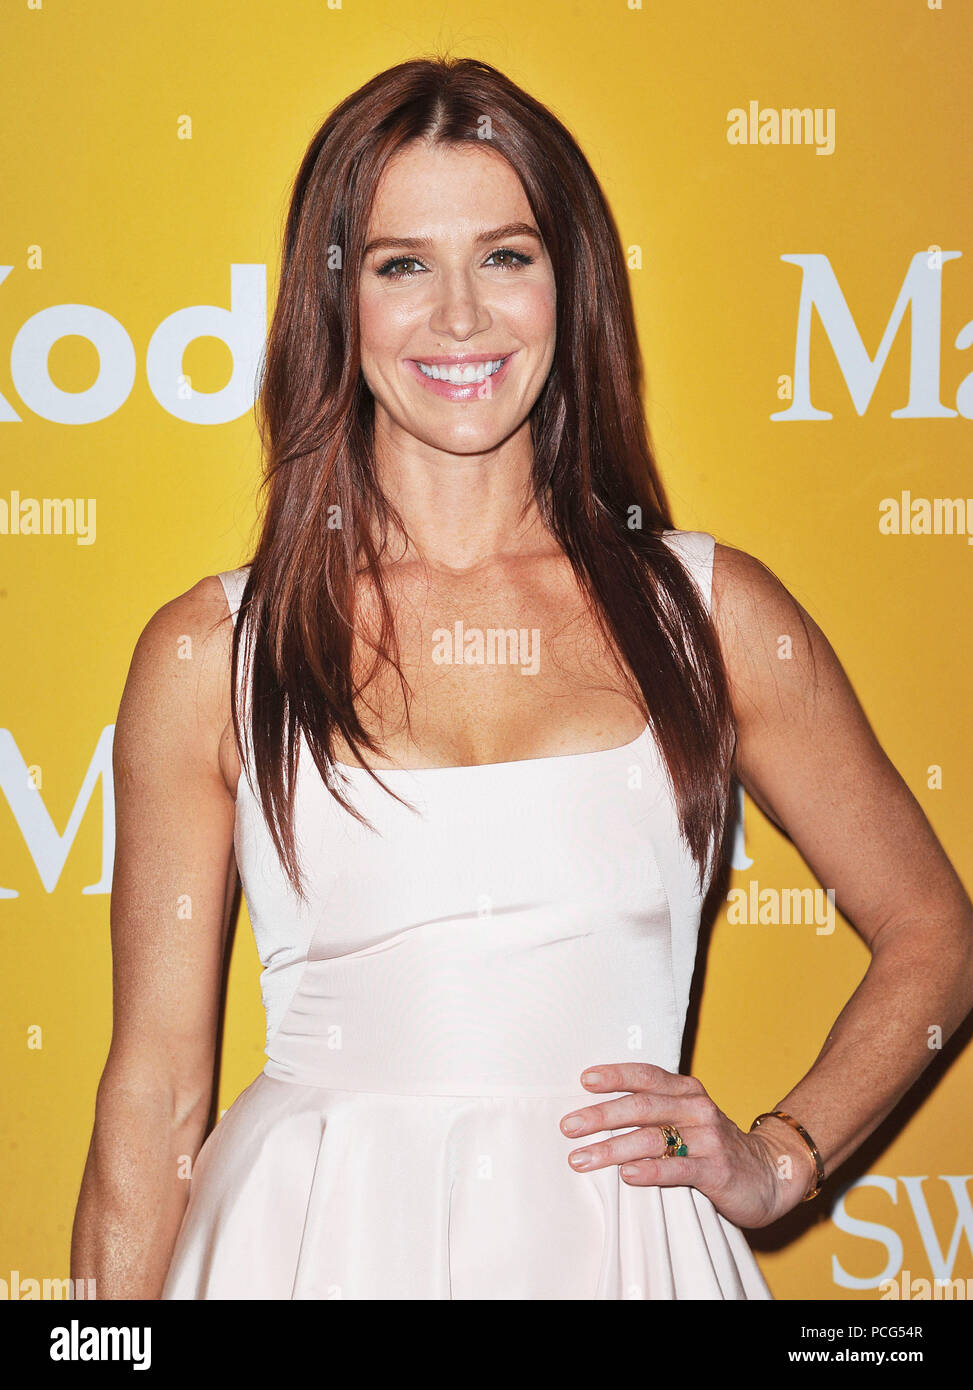 Page 2 Poppy Montgomery High Resolution Stock Photography And Images Alamy